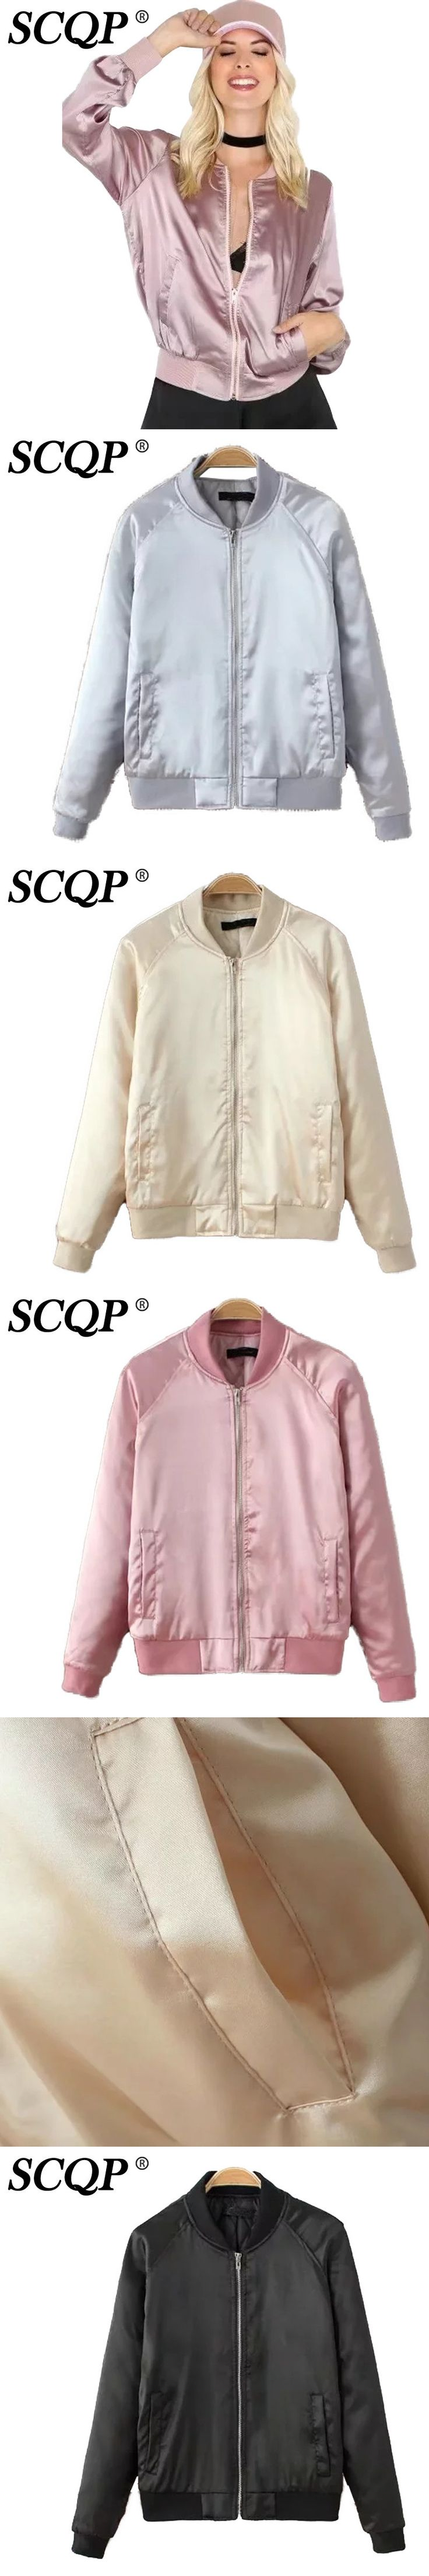 SCQP New Fashion Solid Long Sleeve Baseball Jacket Zippers Pockets Slim Satin Bomber Jacket Streetwear Spring 2017 Jackets Women